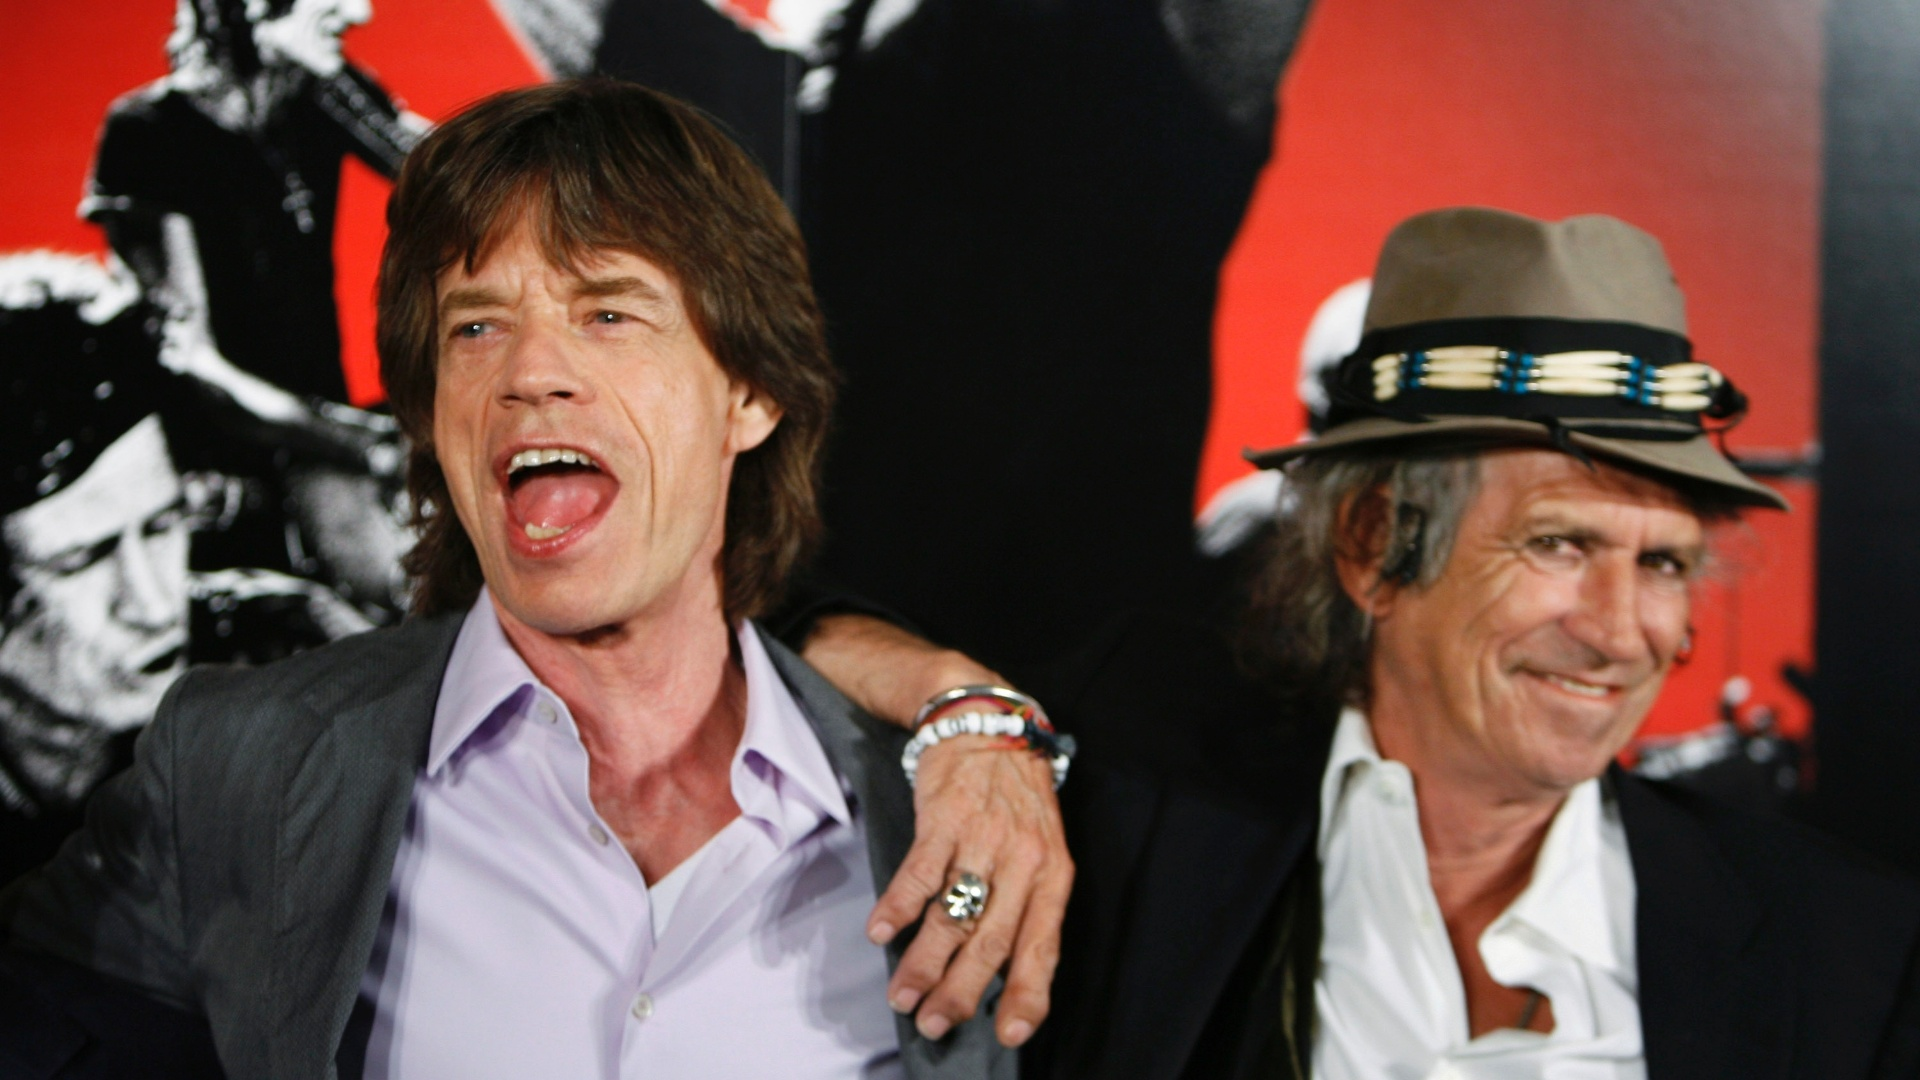 Mick Jagger e Keith Richards durante evento do documentário